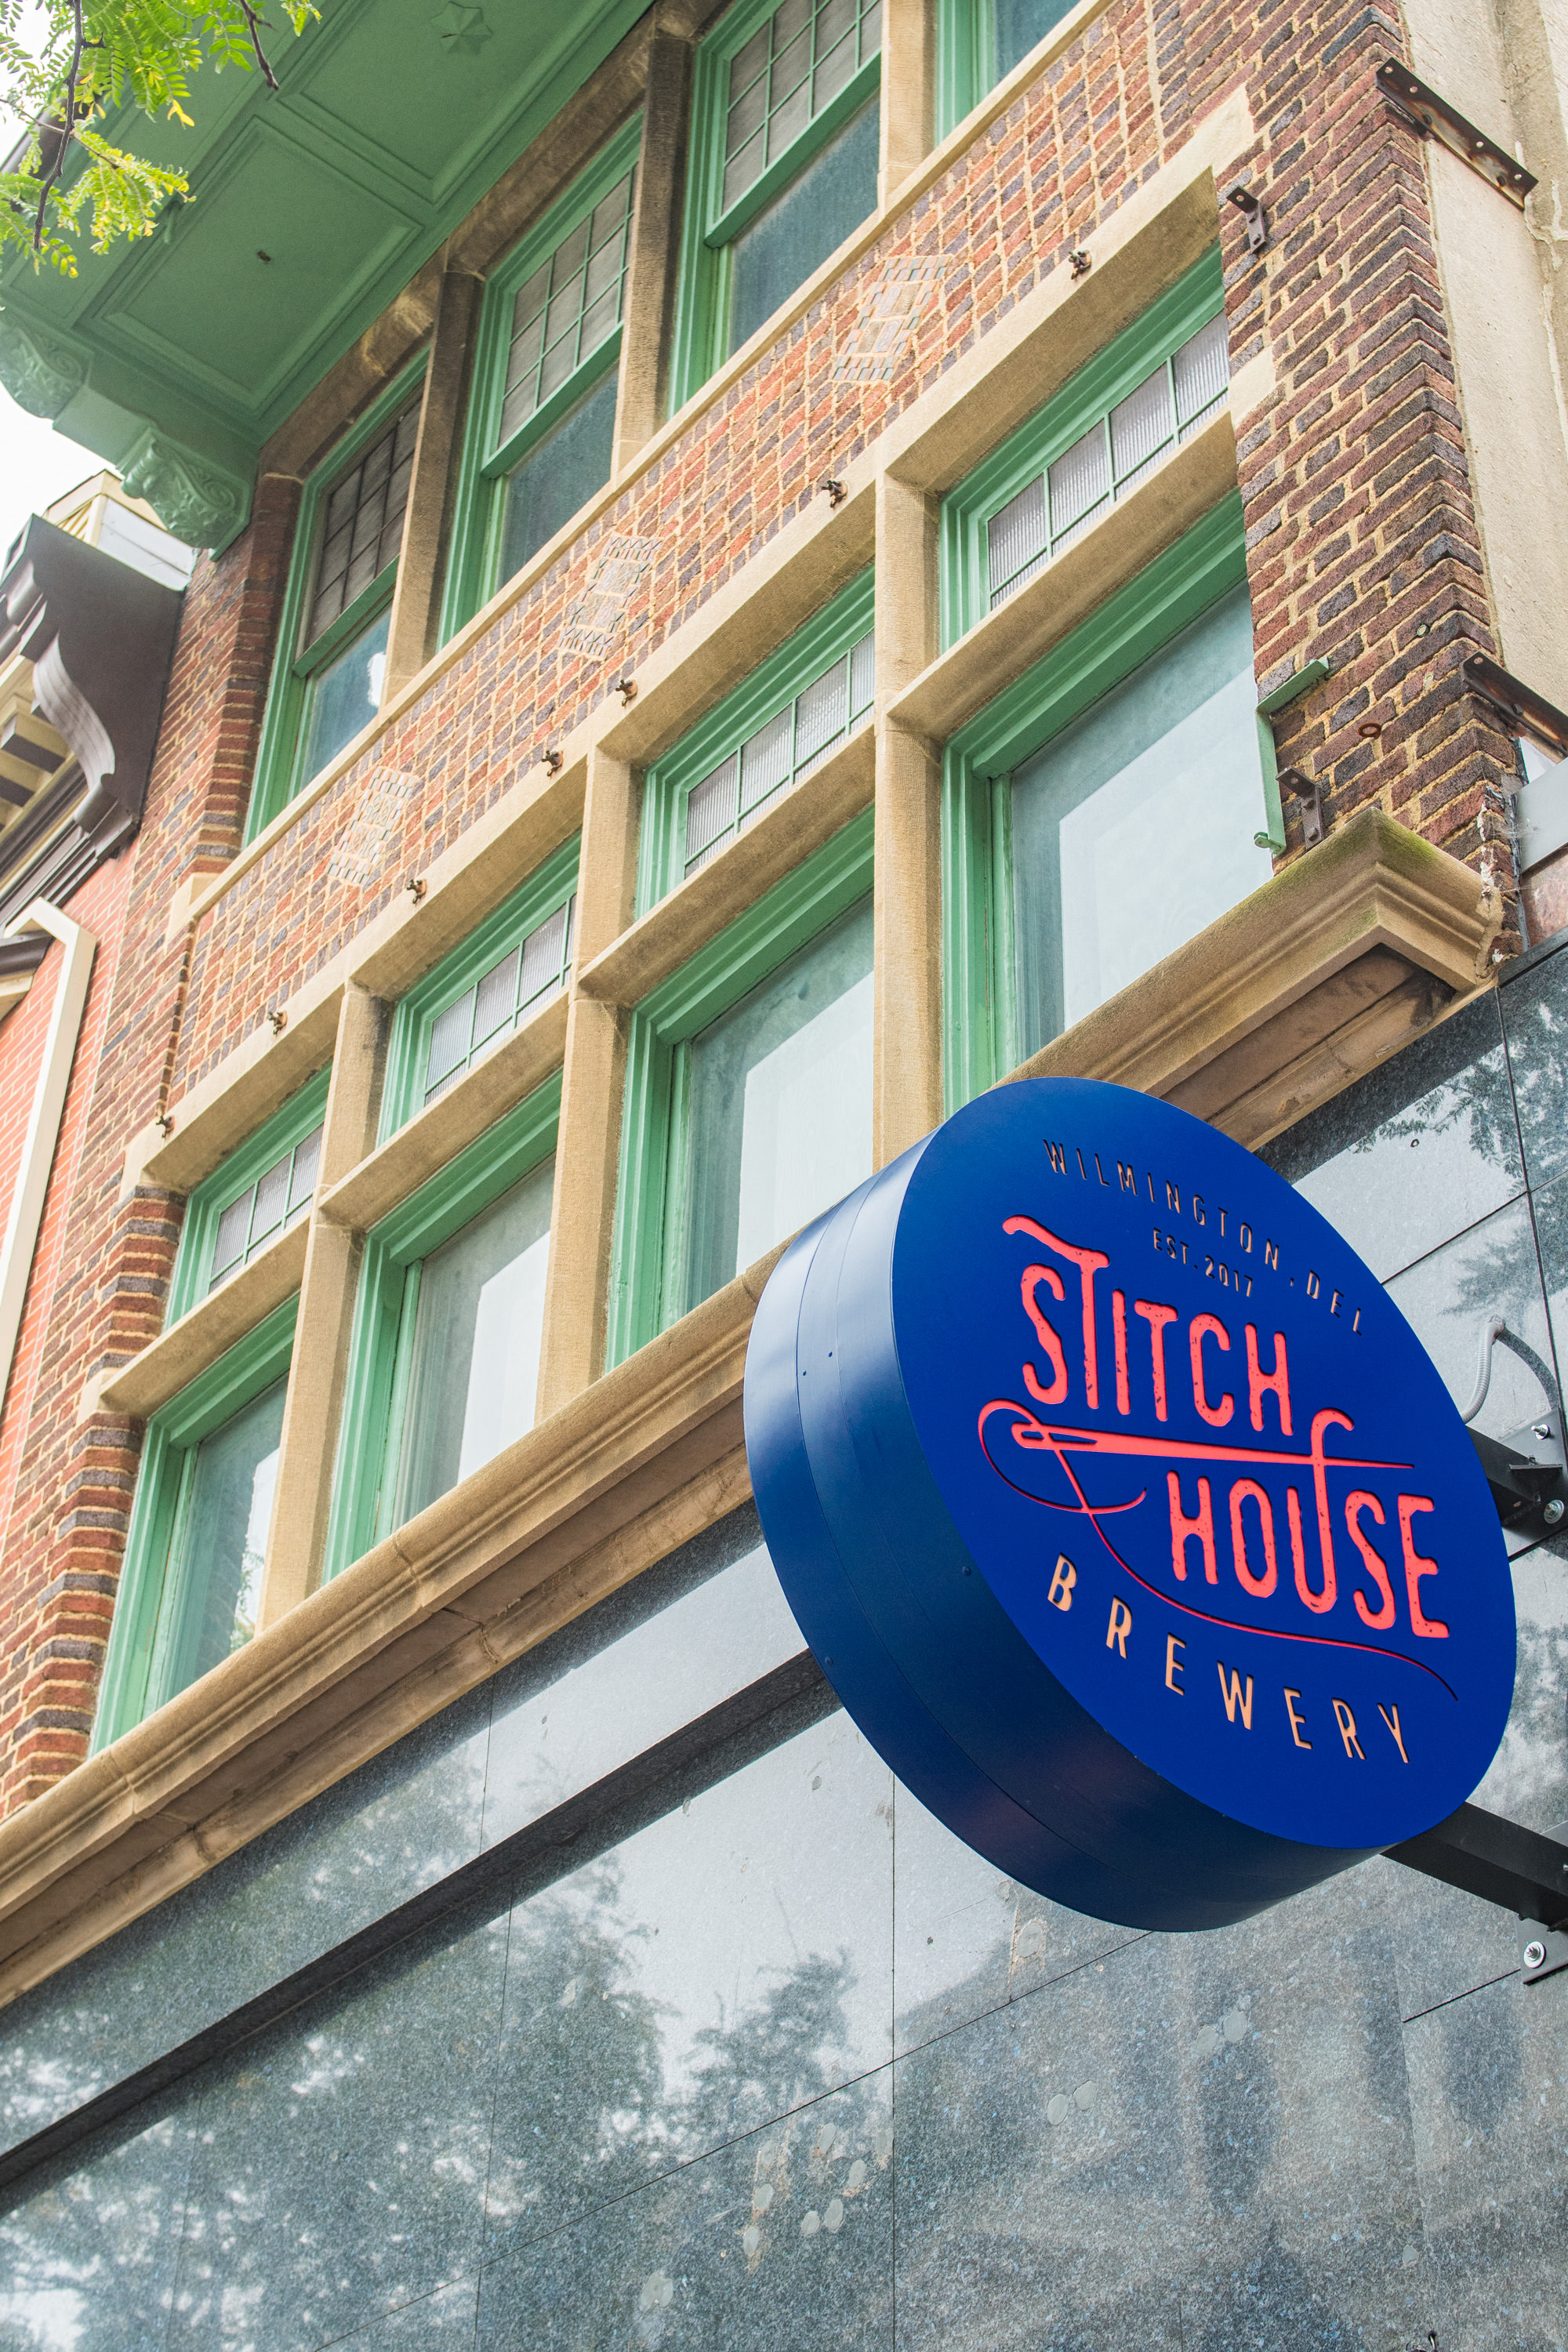 829 MKt apartment exterior with Stitch House Brewery sign